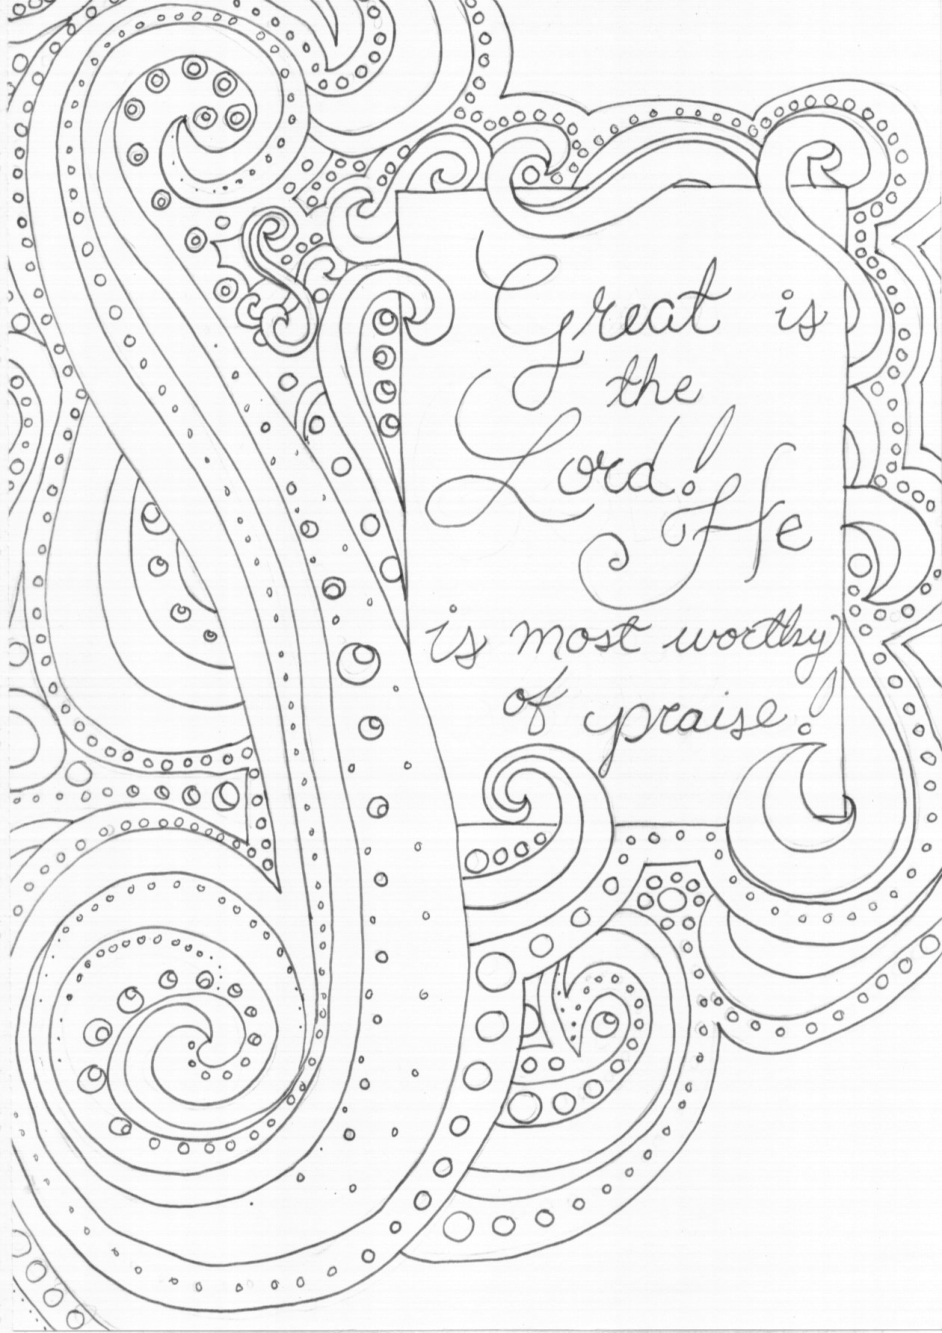 Awesome Adult Coloring Pages the Lord is My Rock Gallery Collection Of Awesome isaac and Rebekah Coloring Pages Design Collection